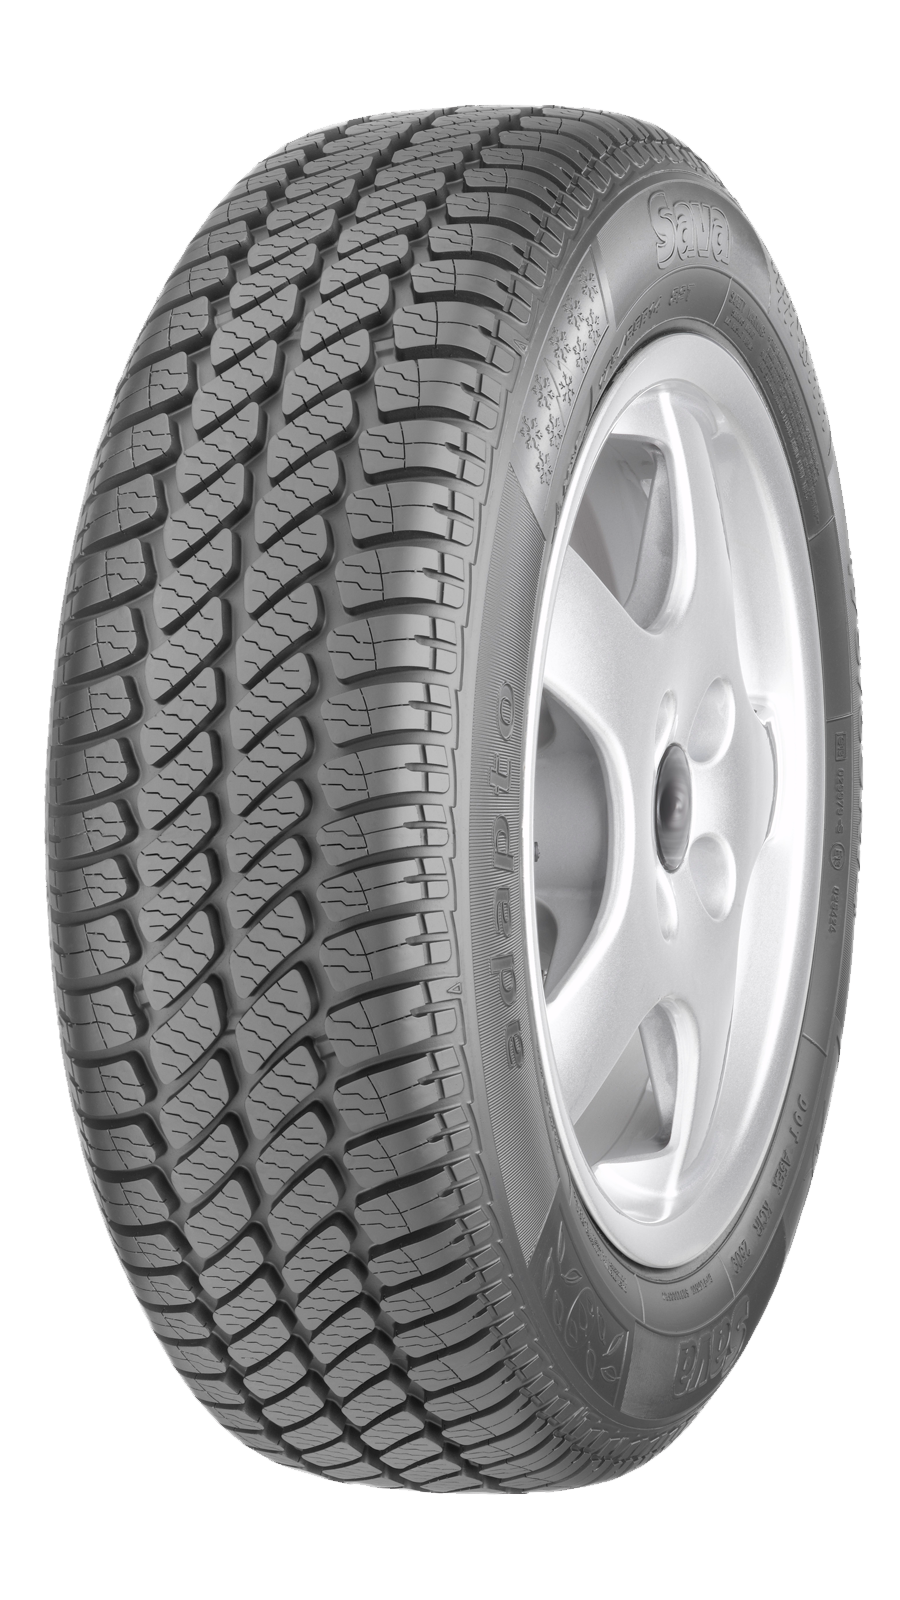 Gomme Autovettura Sava 175/65 R14 82T ADAPTO M+S All Season